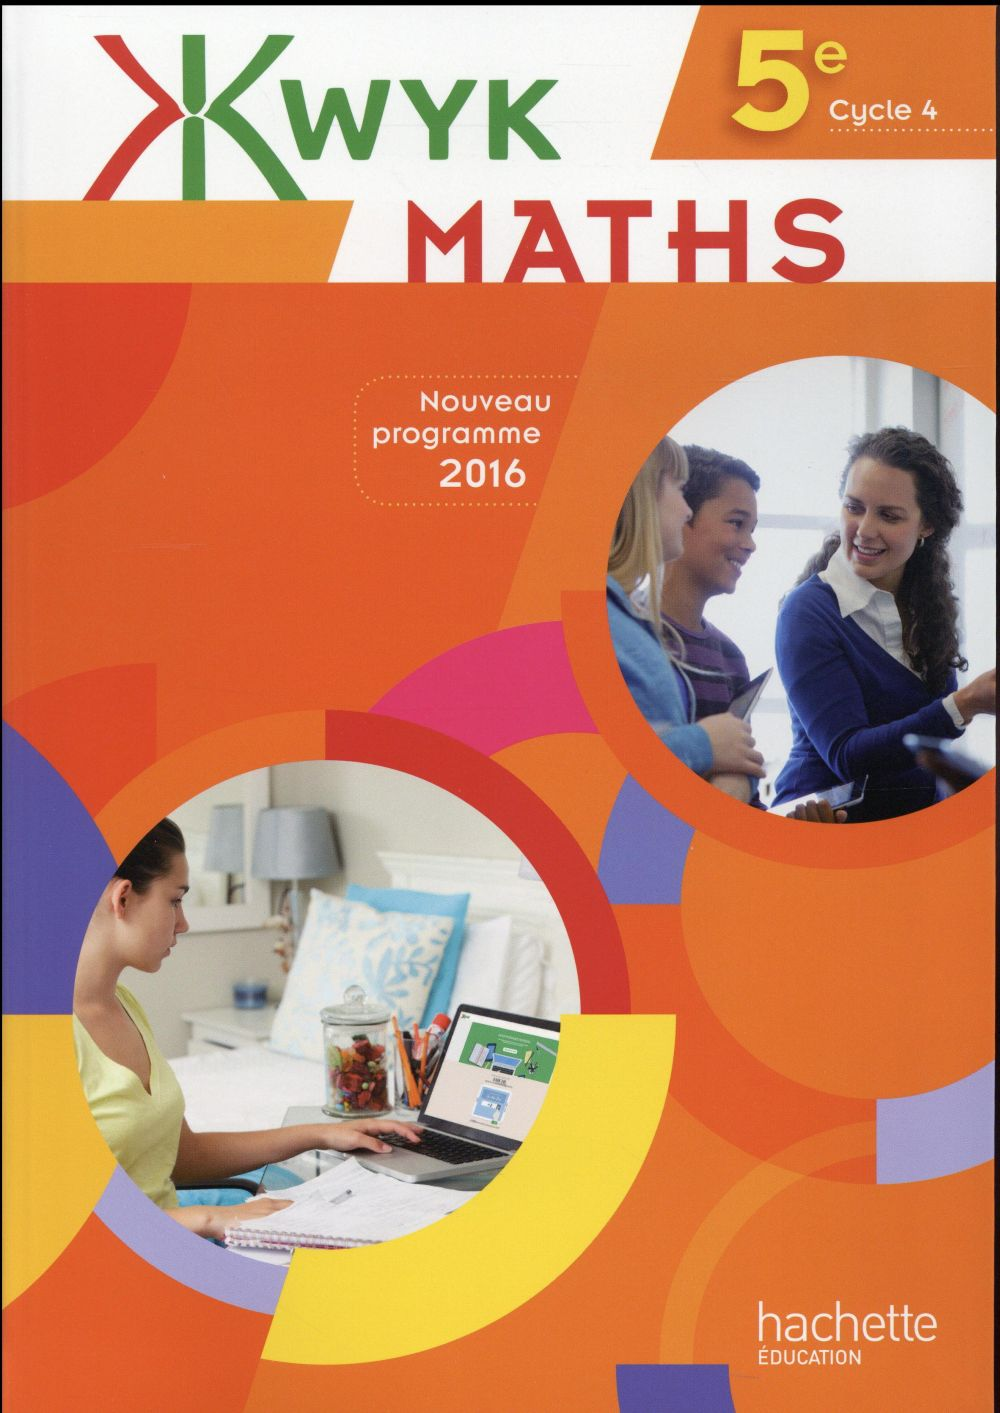 Le Livre Scolaire 5e Maths : livre, scolaire, maths, Maths, 5ème, Livre, L'élève, (édition, 2016), Collectif, Hachette, Education, Grand, Format, Paroles, MANDE